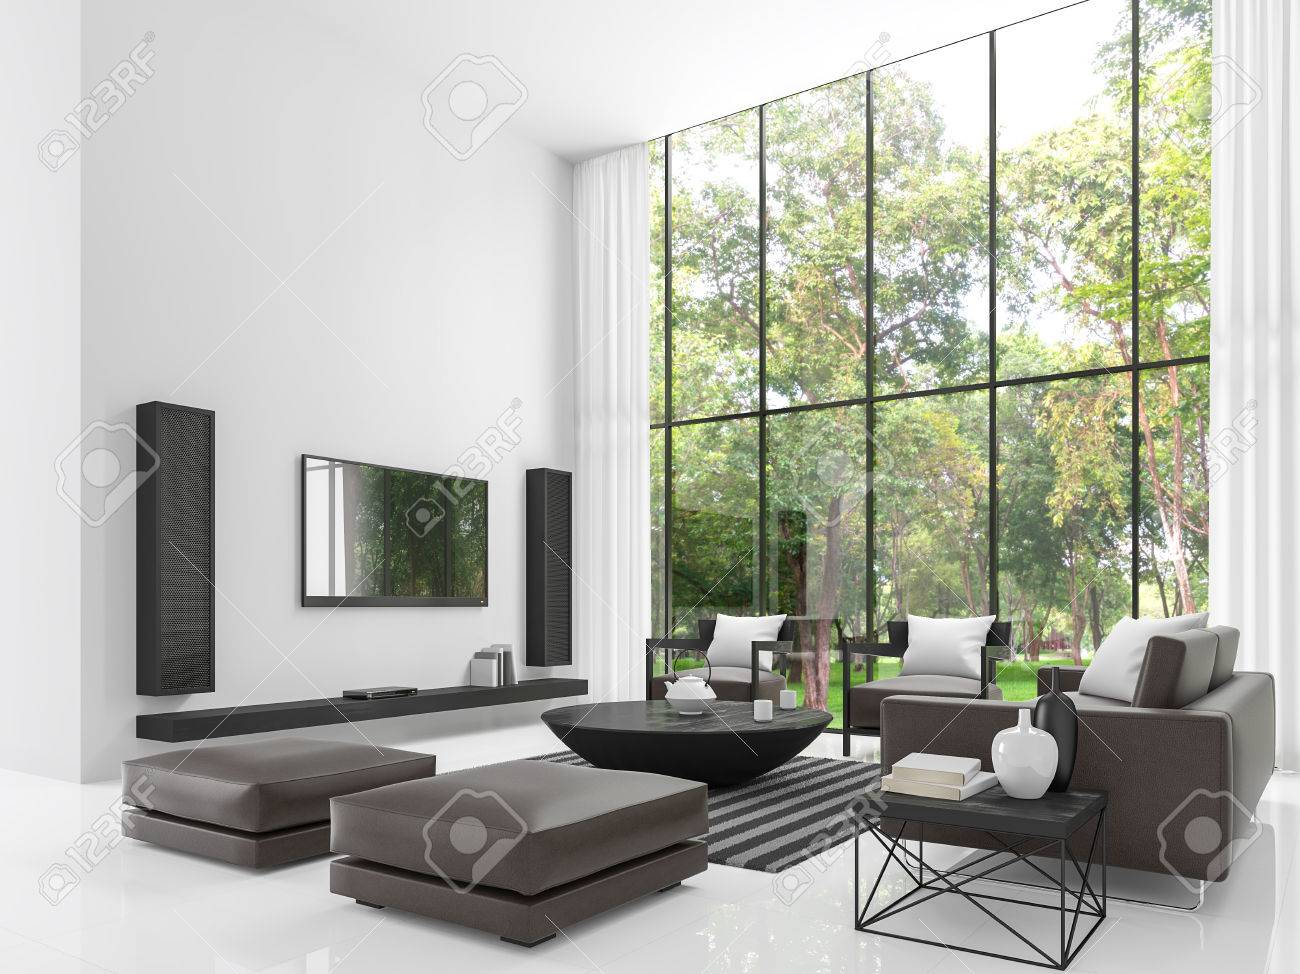 Modern White Living Room 3d Rendering Image The Has Stock Photo Picture And Royalty Free 81339608